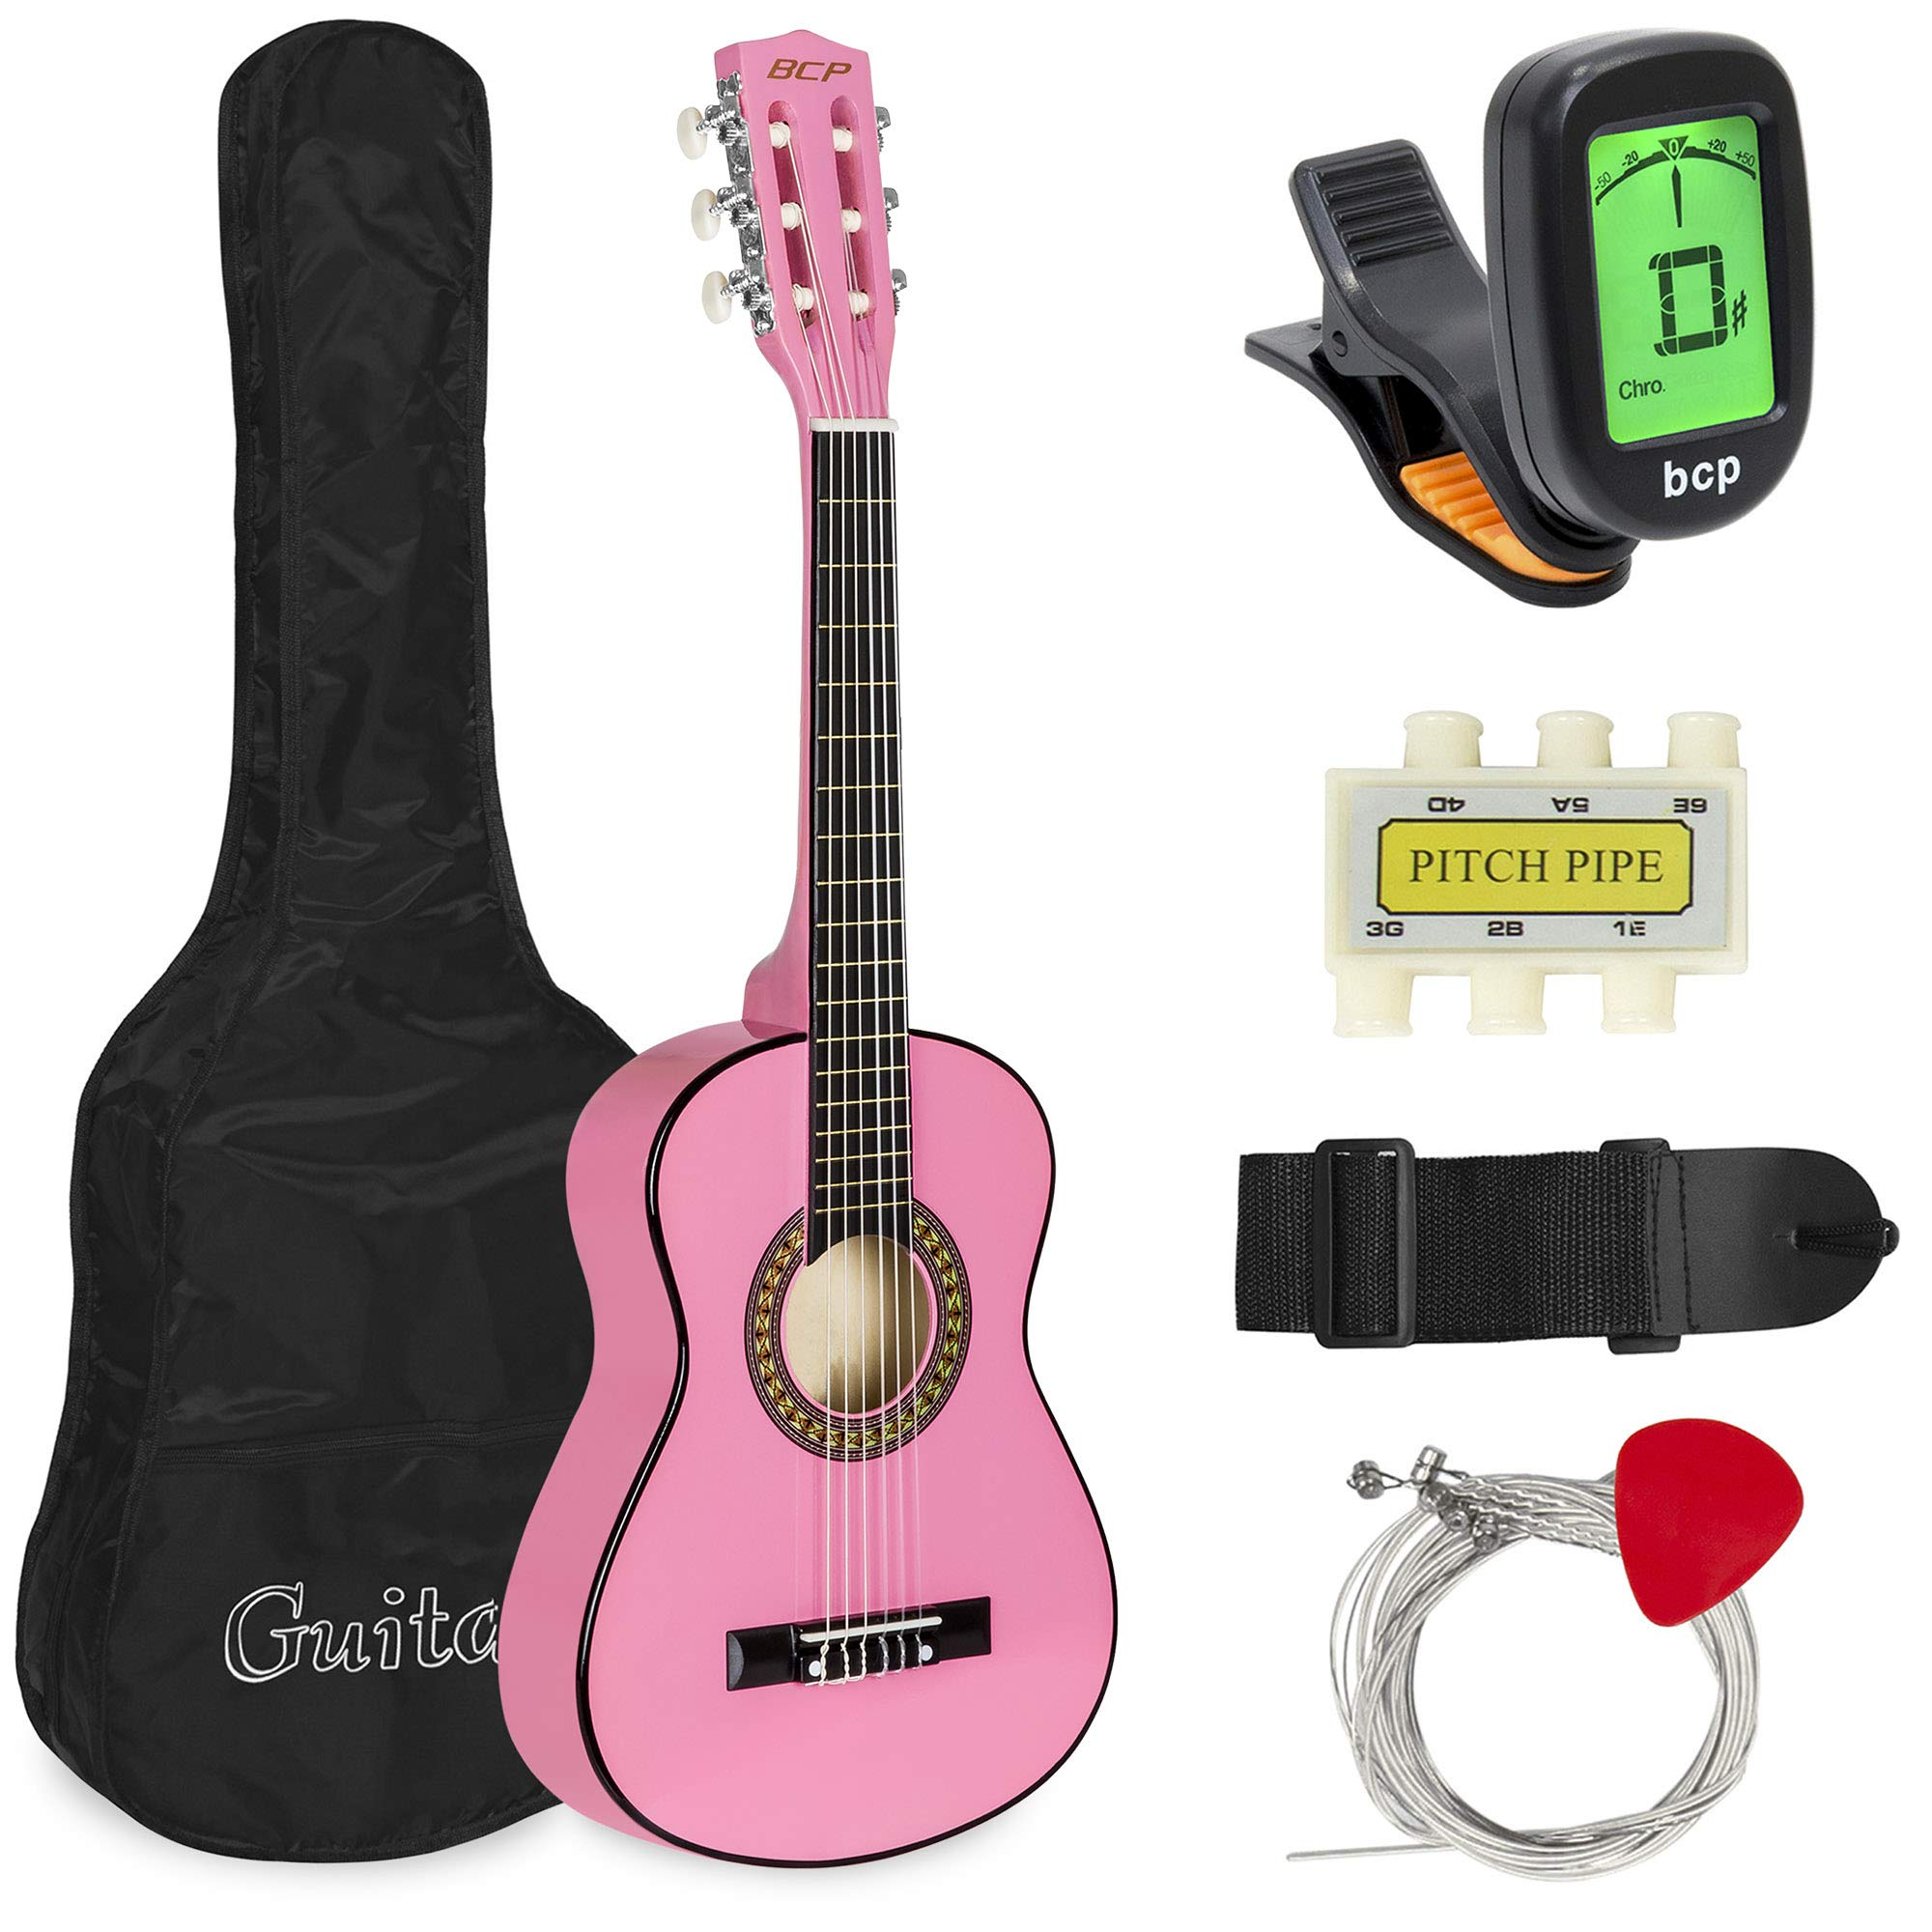 Best Choice Products 30in Kids Classical Acoustic Guitar Beginners Set w/Carry Bag, Picks, E-Tuner, Strap - Pink by Best Choice Products (Image #1)